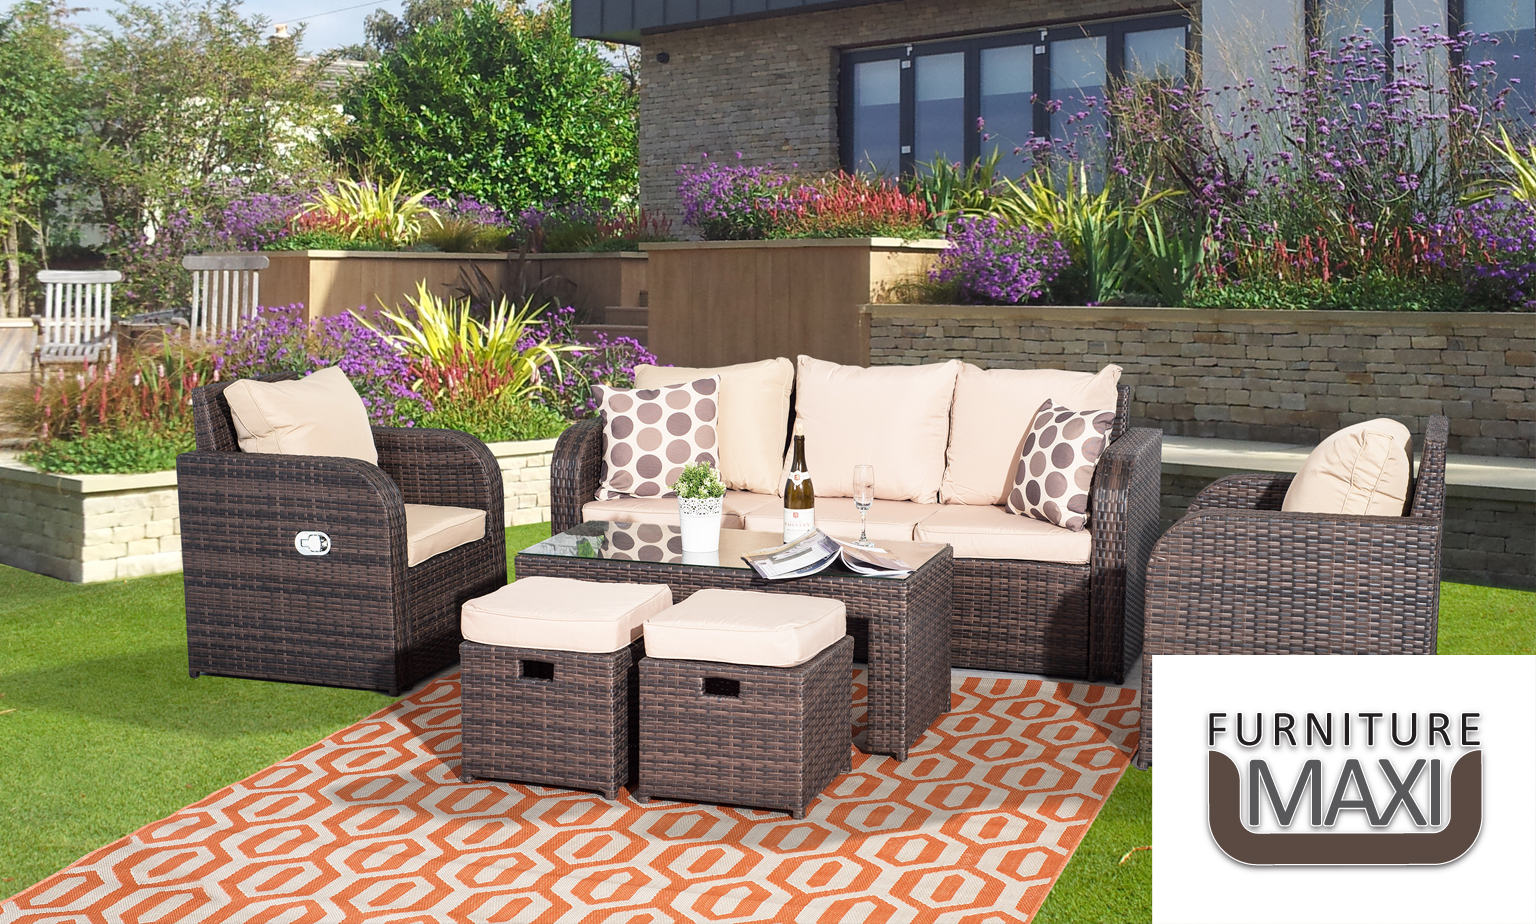 Save up to 20% off Garden Furniture